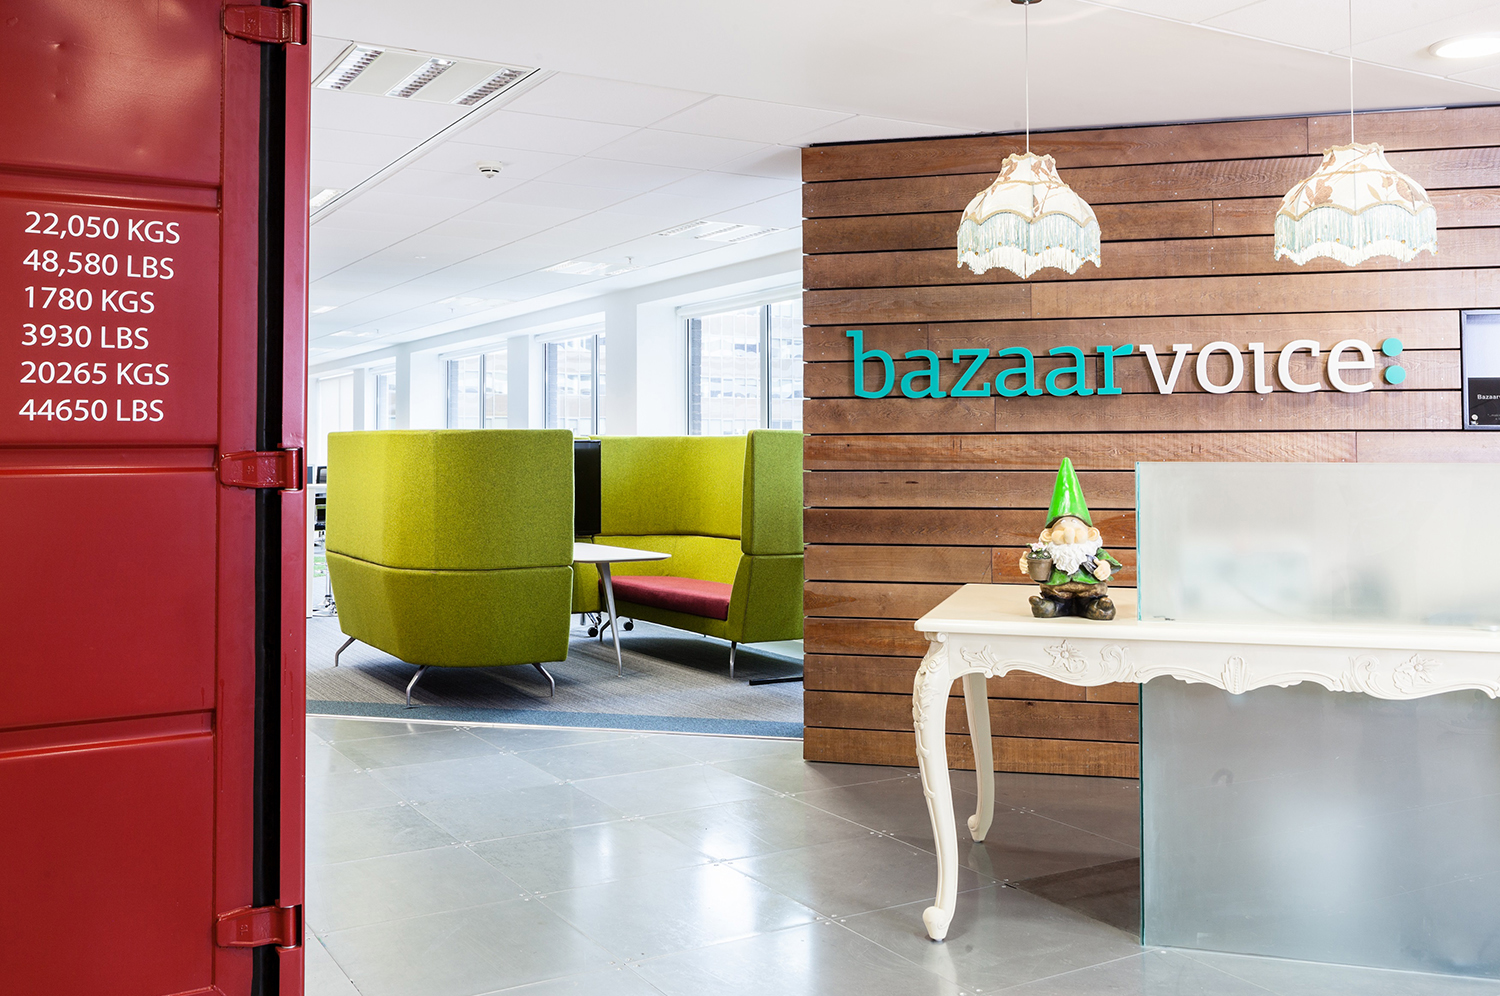 Take a Tour of Bazaarvoice's Cool London Office